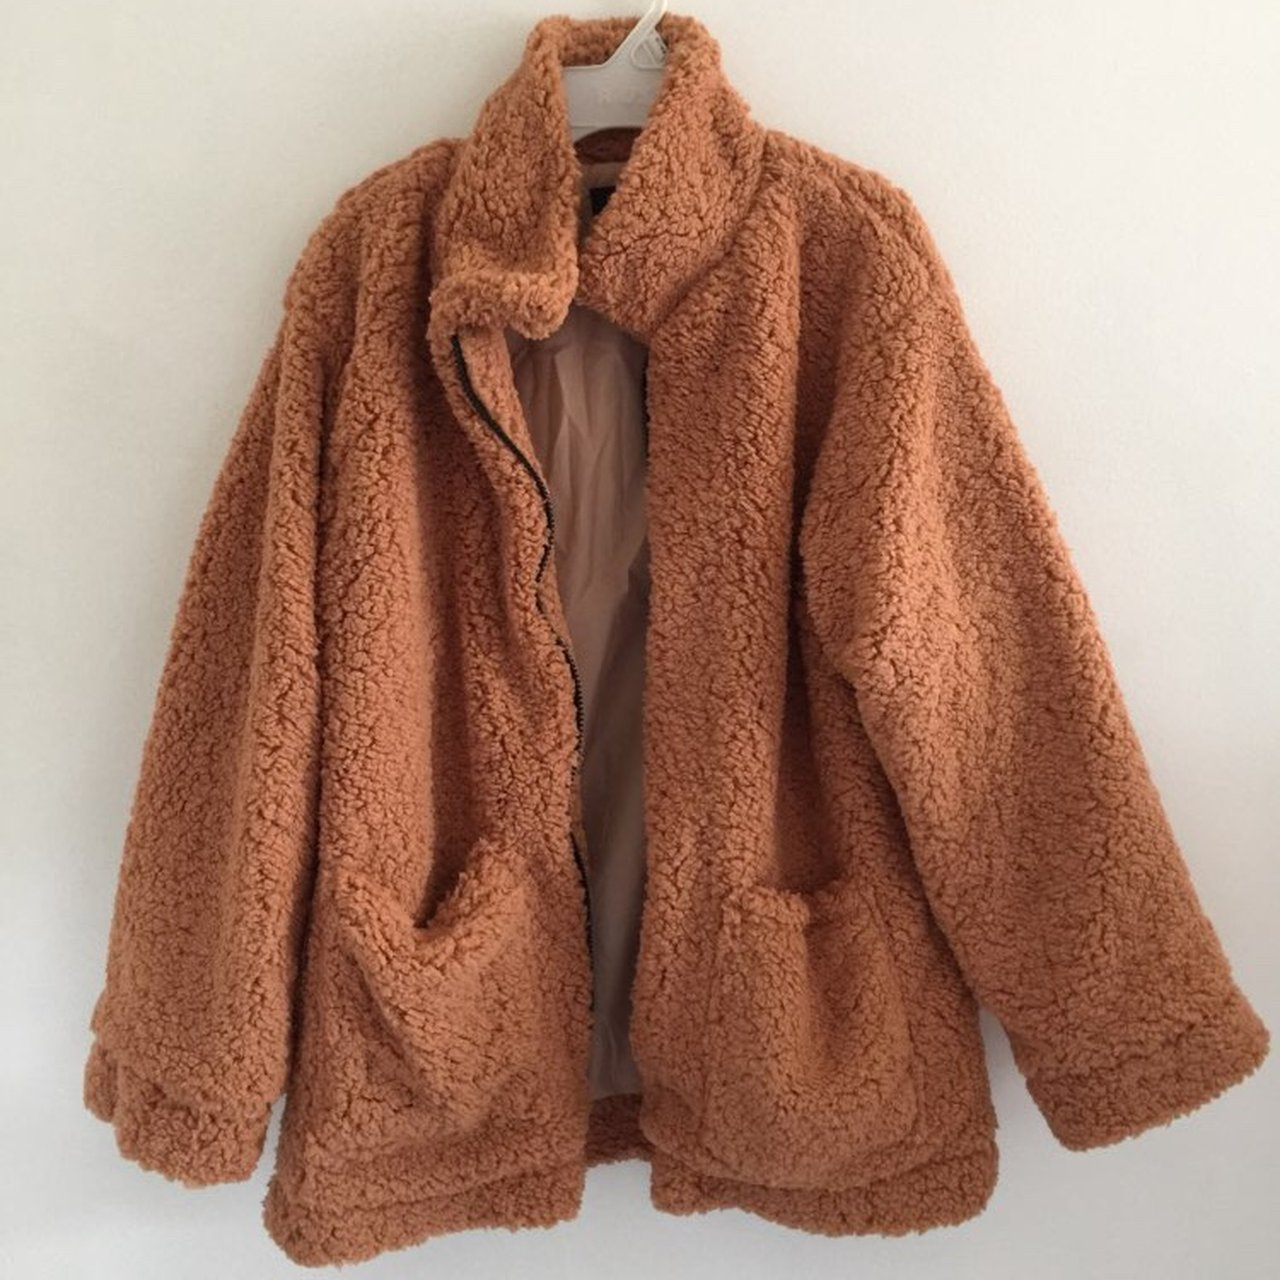 12caf84ff91a ON HOLD!!! Poopy Fluffy Jacket. Bought from AliExpress. Size - Depop